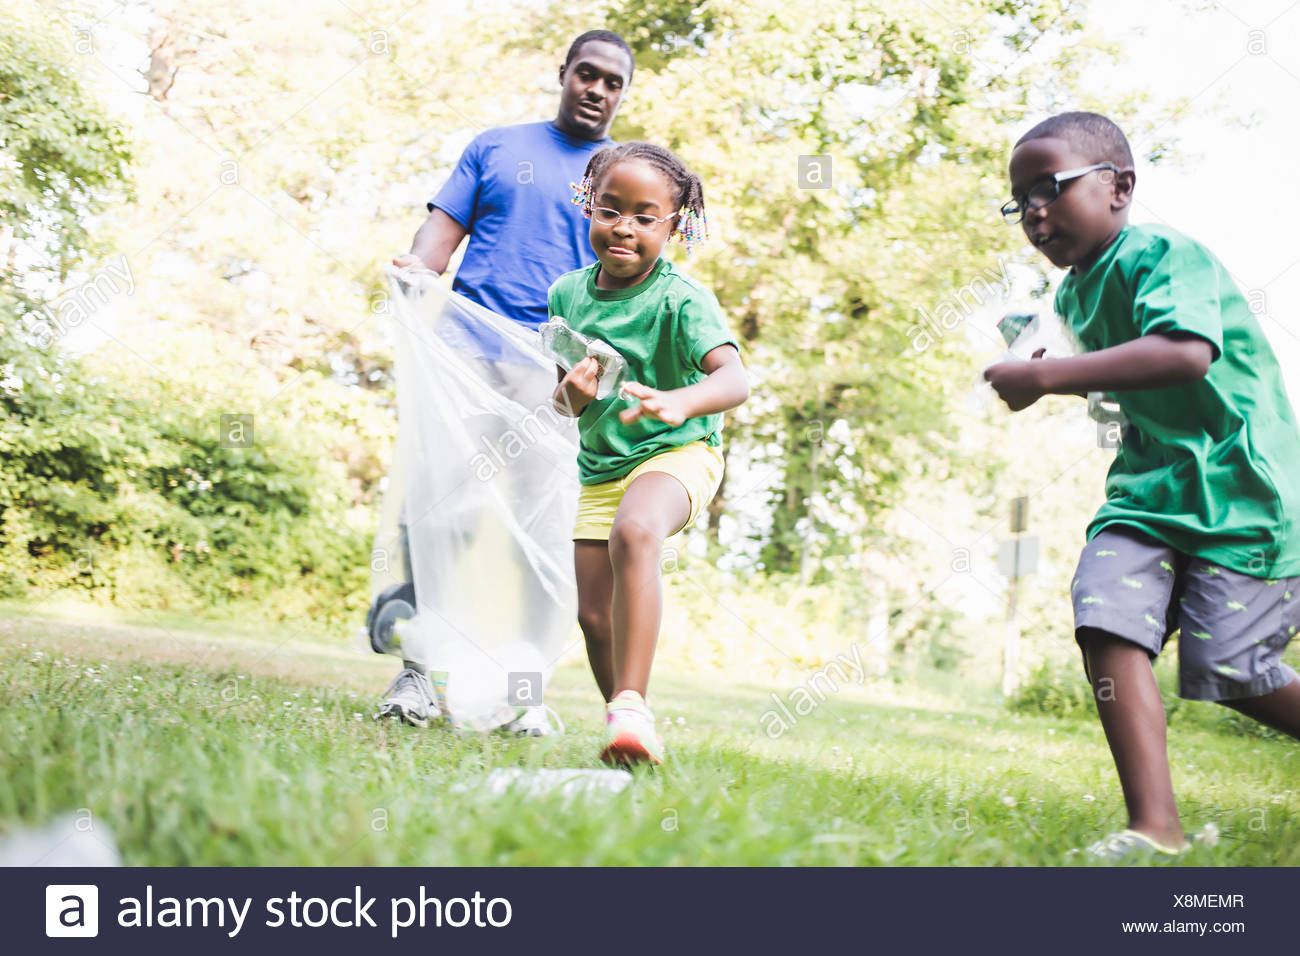 Father picking up litter with son and daughter at parkland eco camp - Stock Image